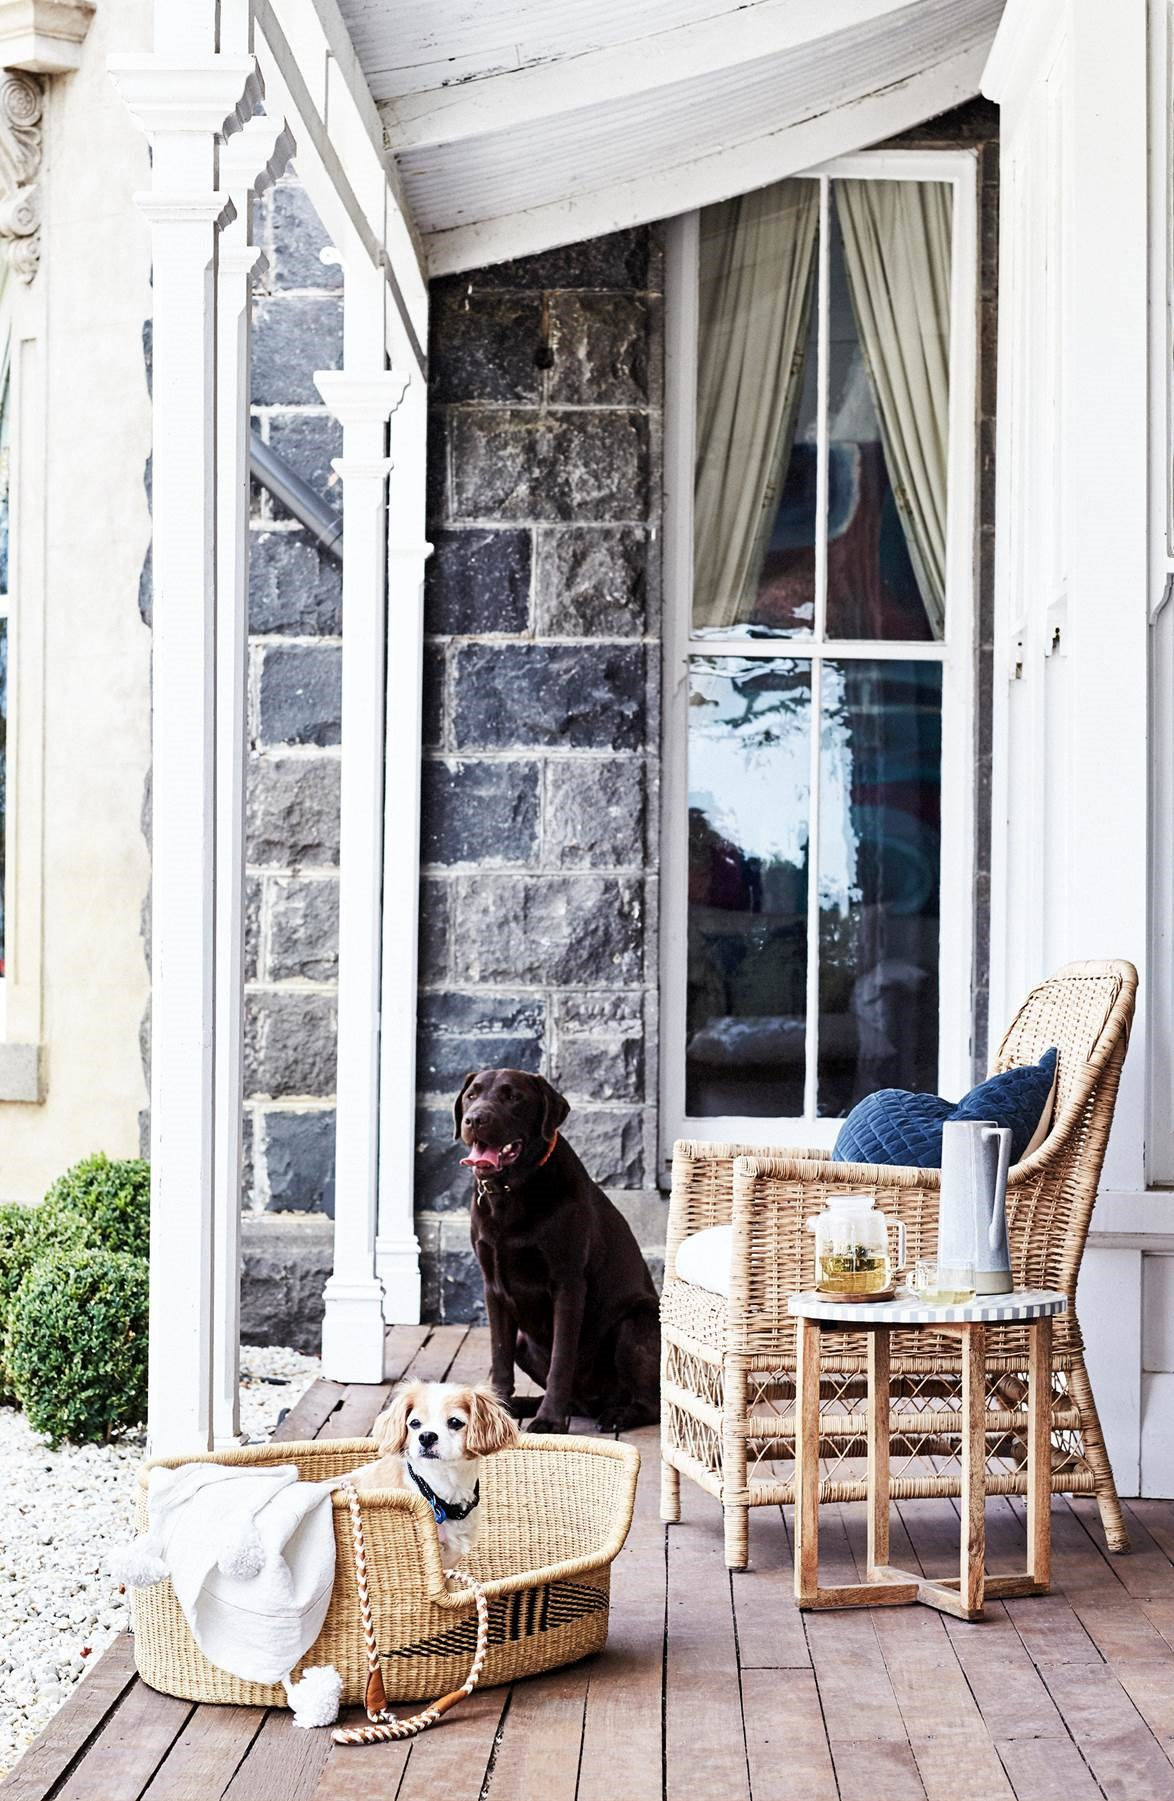 Set boundaries and create safe and comfortable spaces for your dog to make them less inclined to wander.